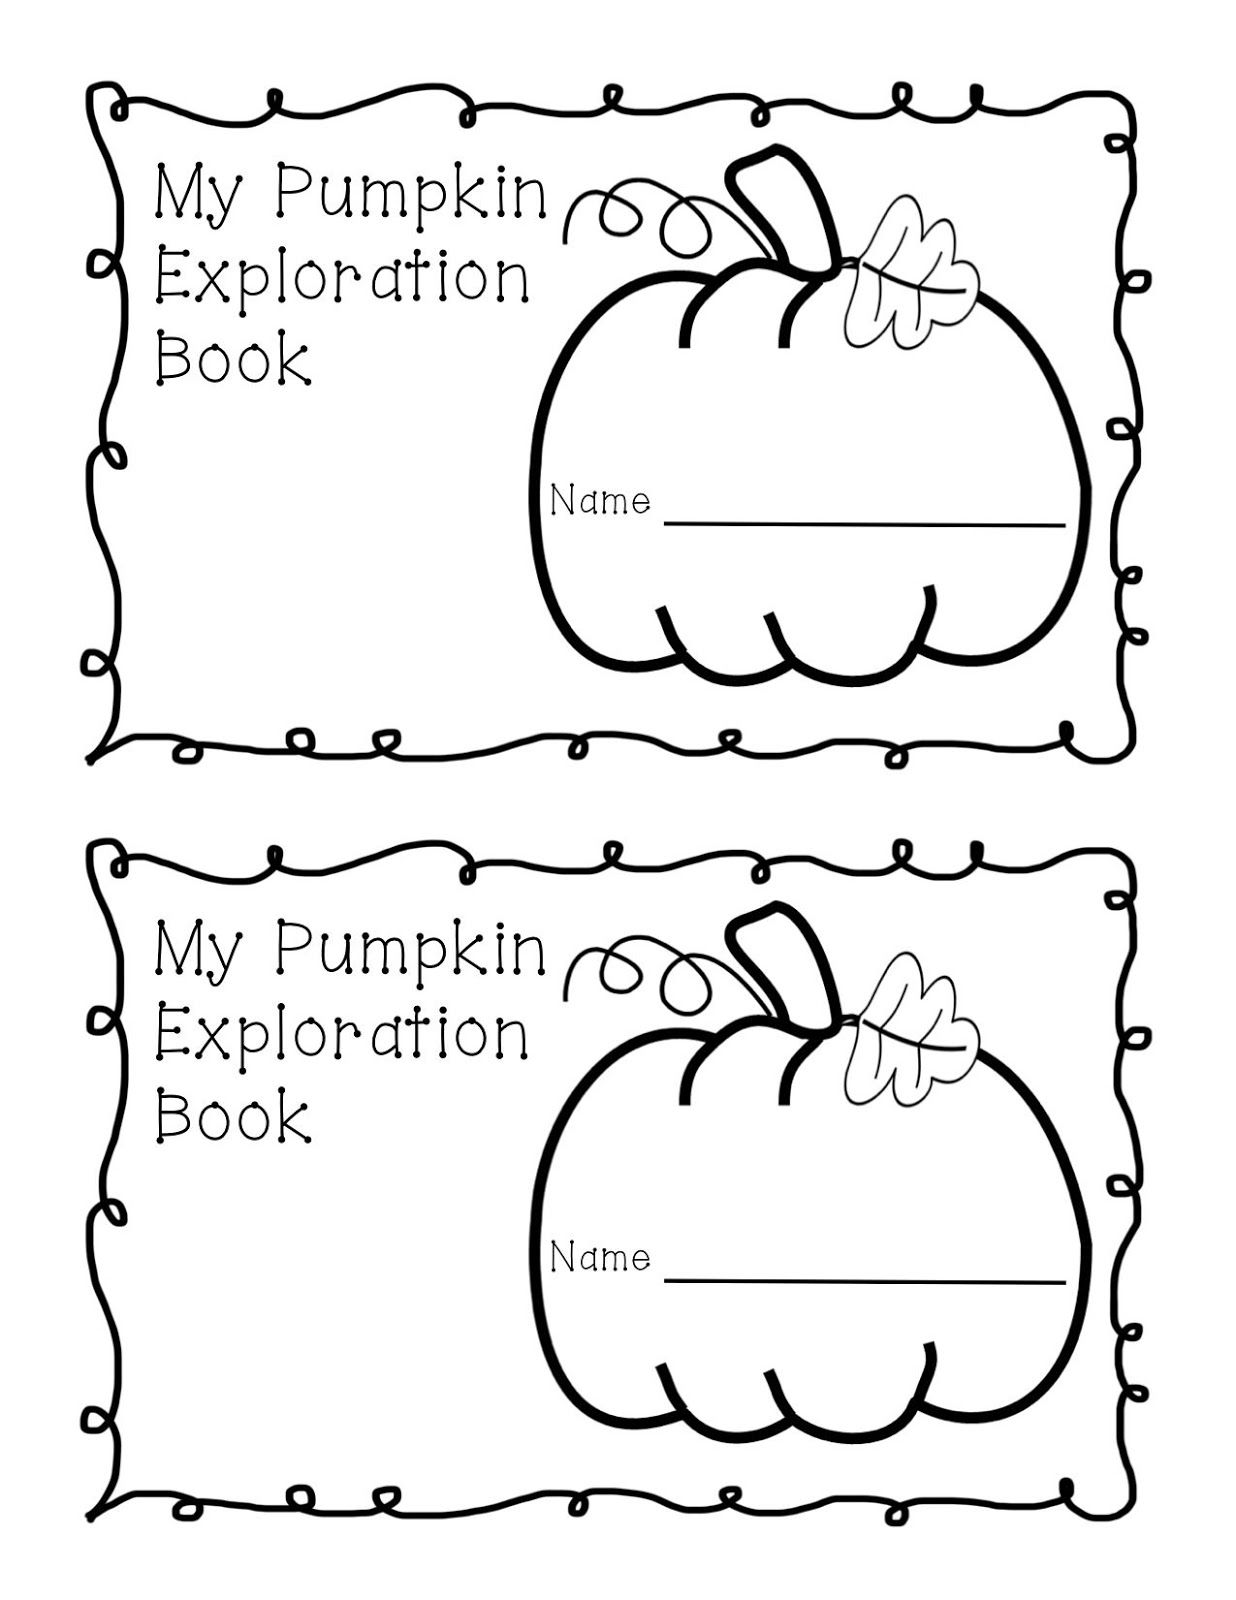 Pumpkin Theme Students Explore Pumpkins And Record Their